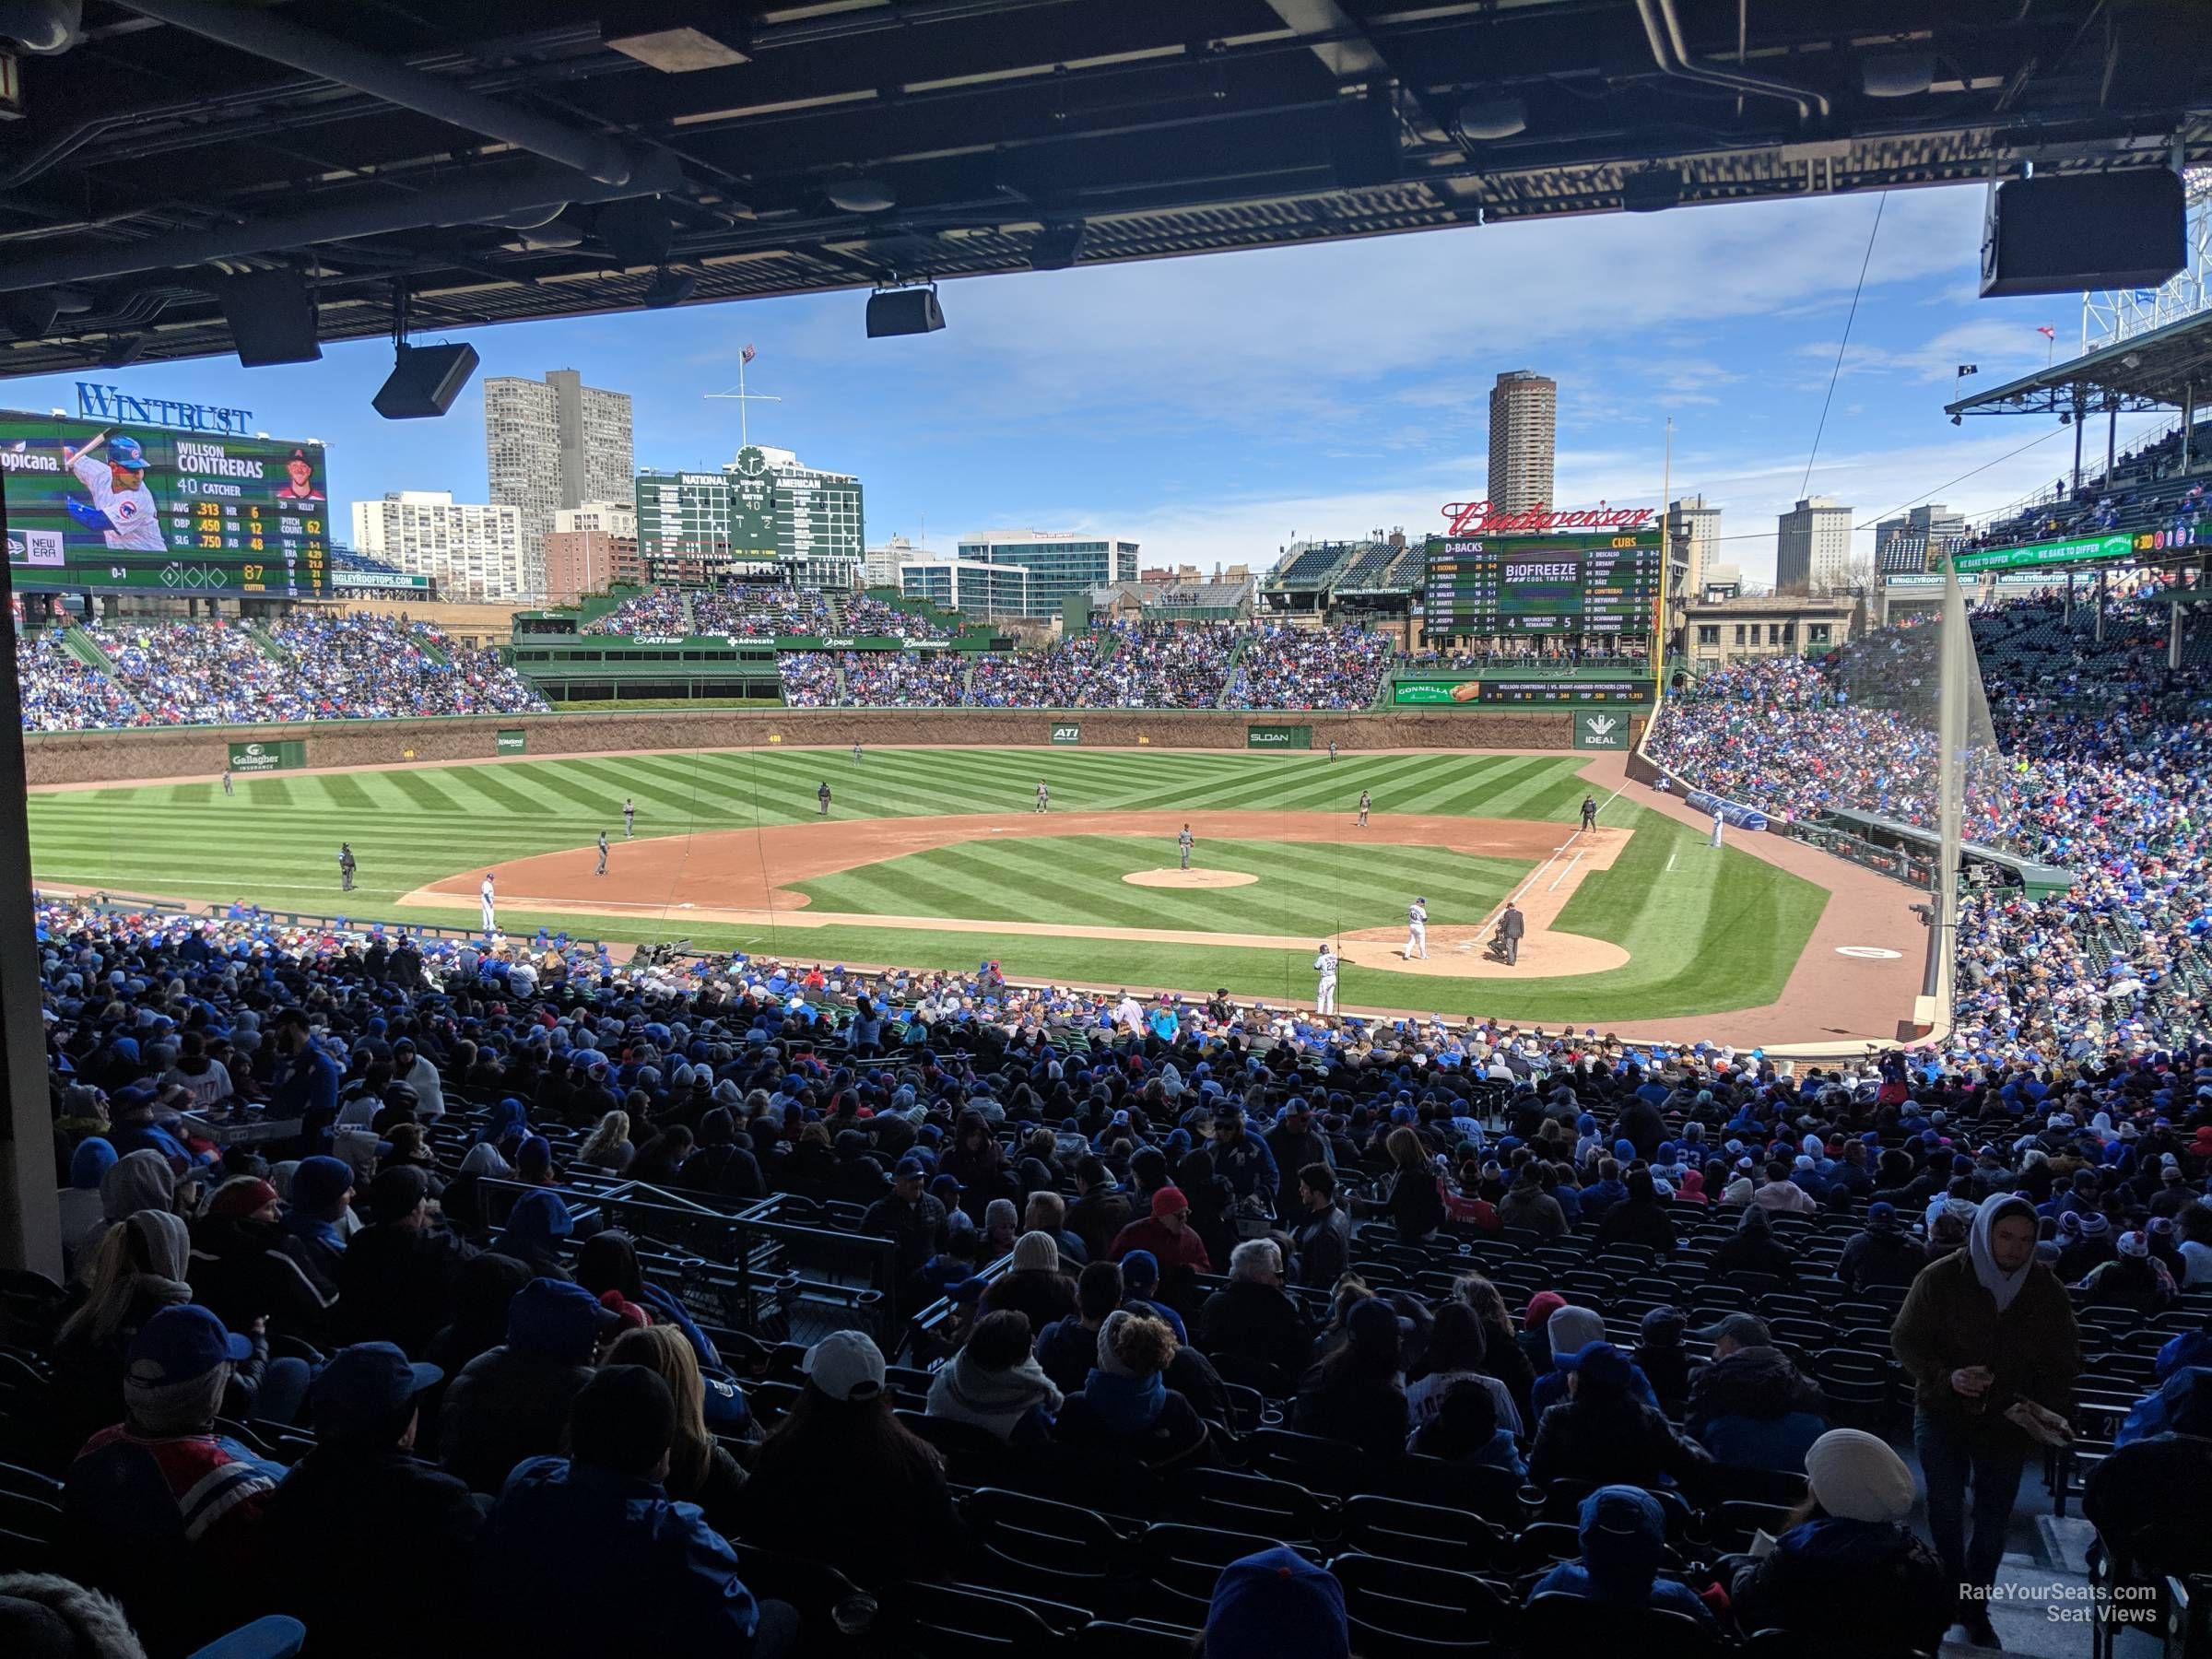 Wrigley Field Section 214 - Chicago Cubs - RateYourSeats.com